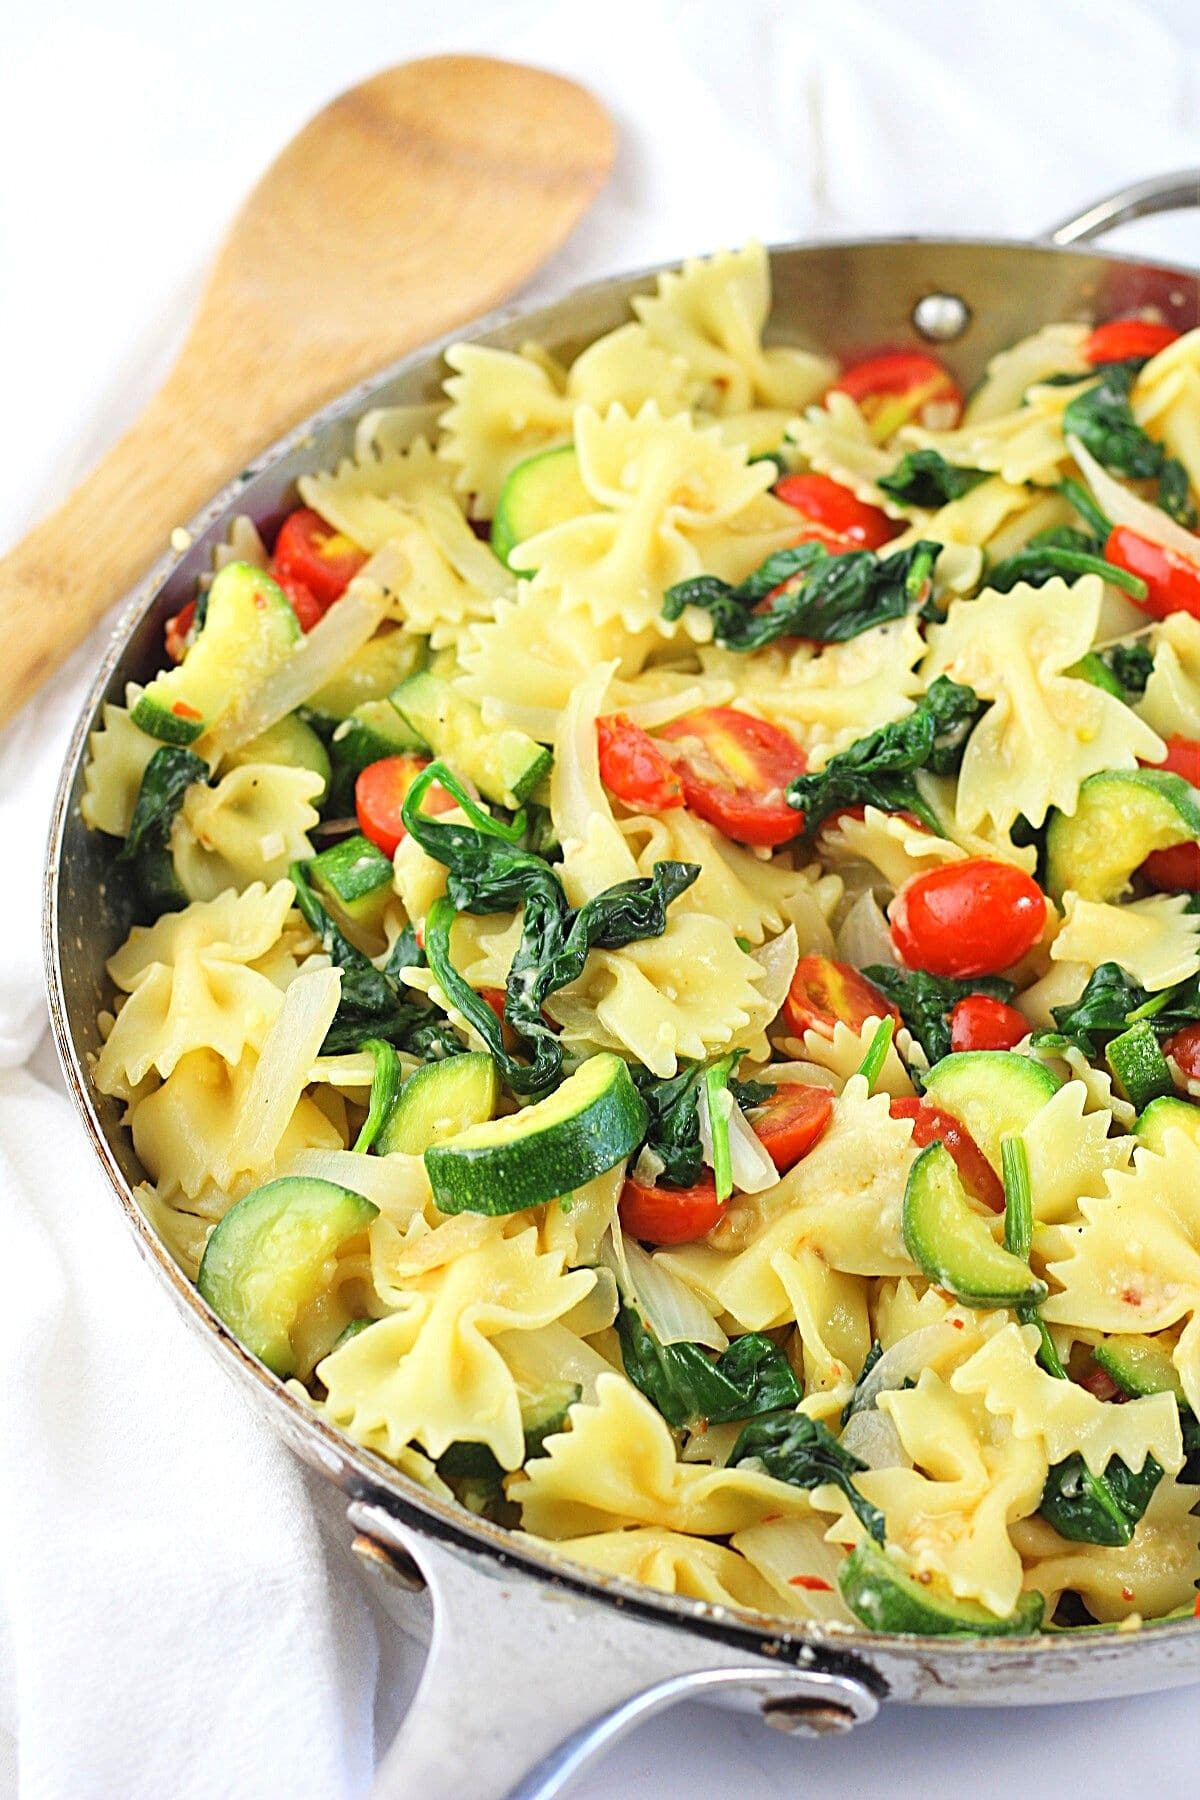 farfalle pasta with zucchini, spinach and tomatoes in a pan with a wooden spoon on the side